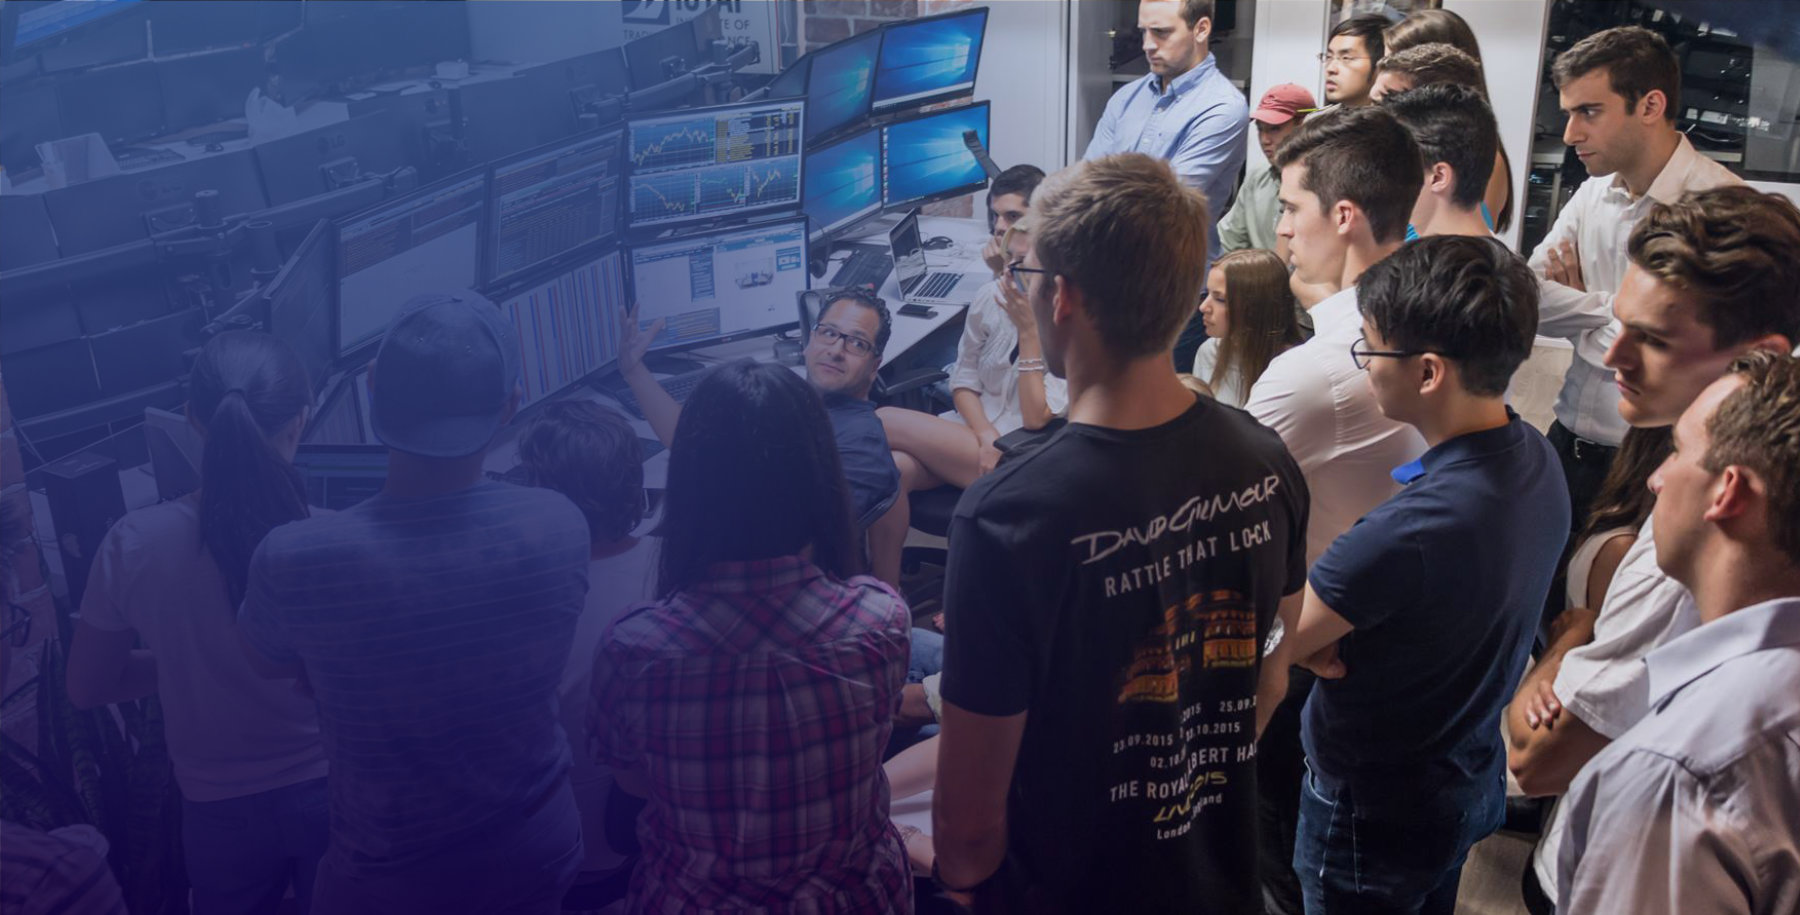 IOTAF trading floor with students